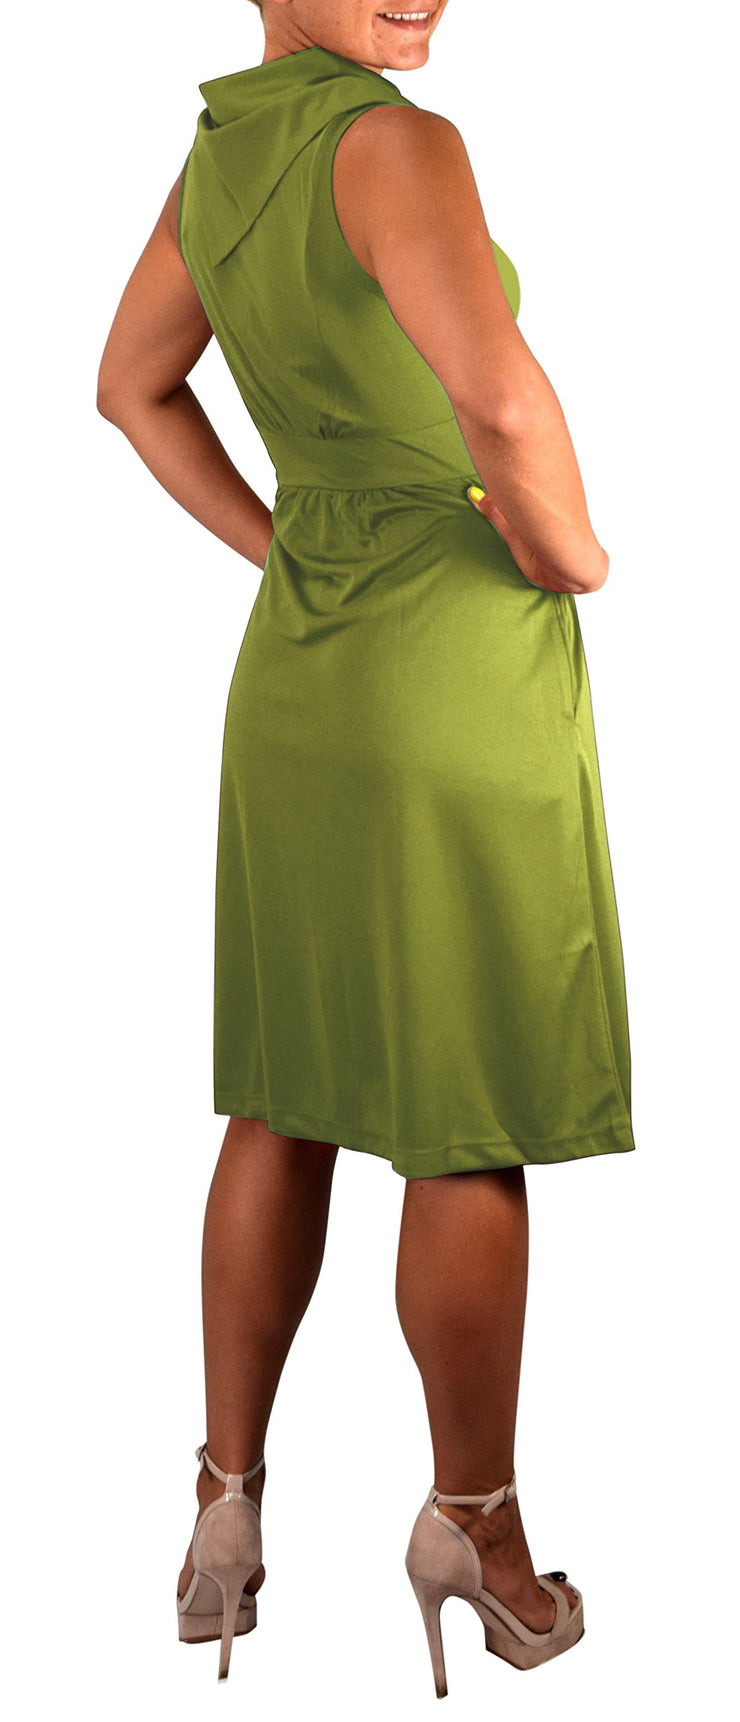 Womens Casual Sleeveless Classic Fold Over Collar A-Line Dress